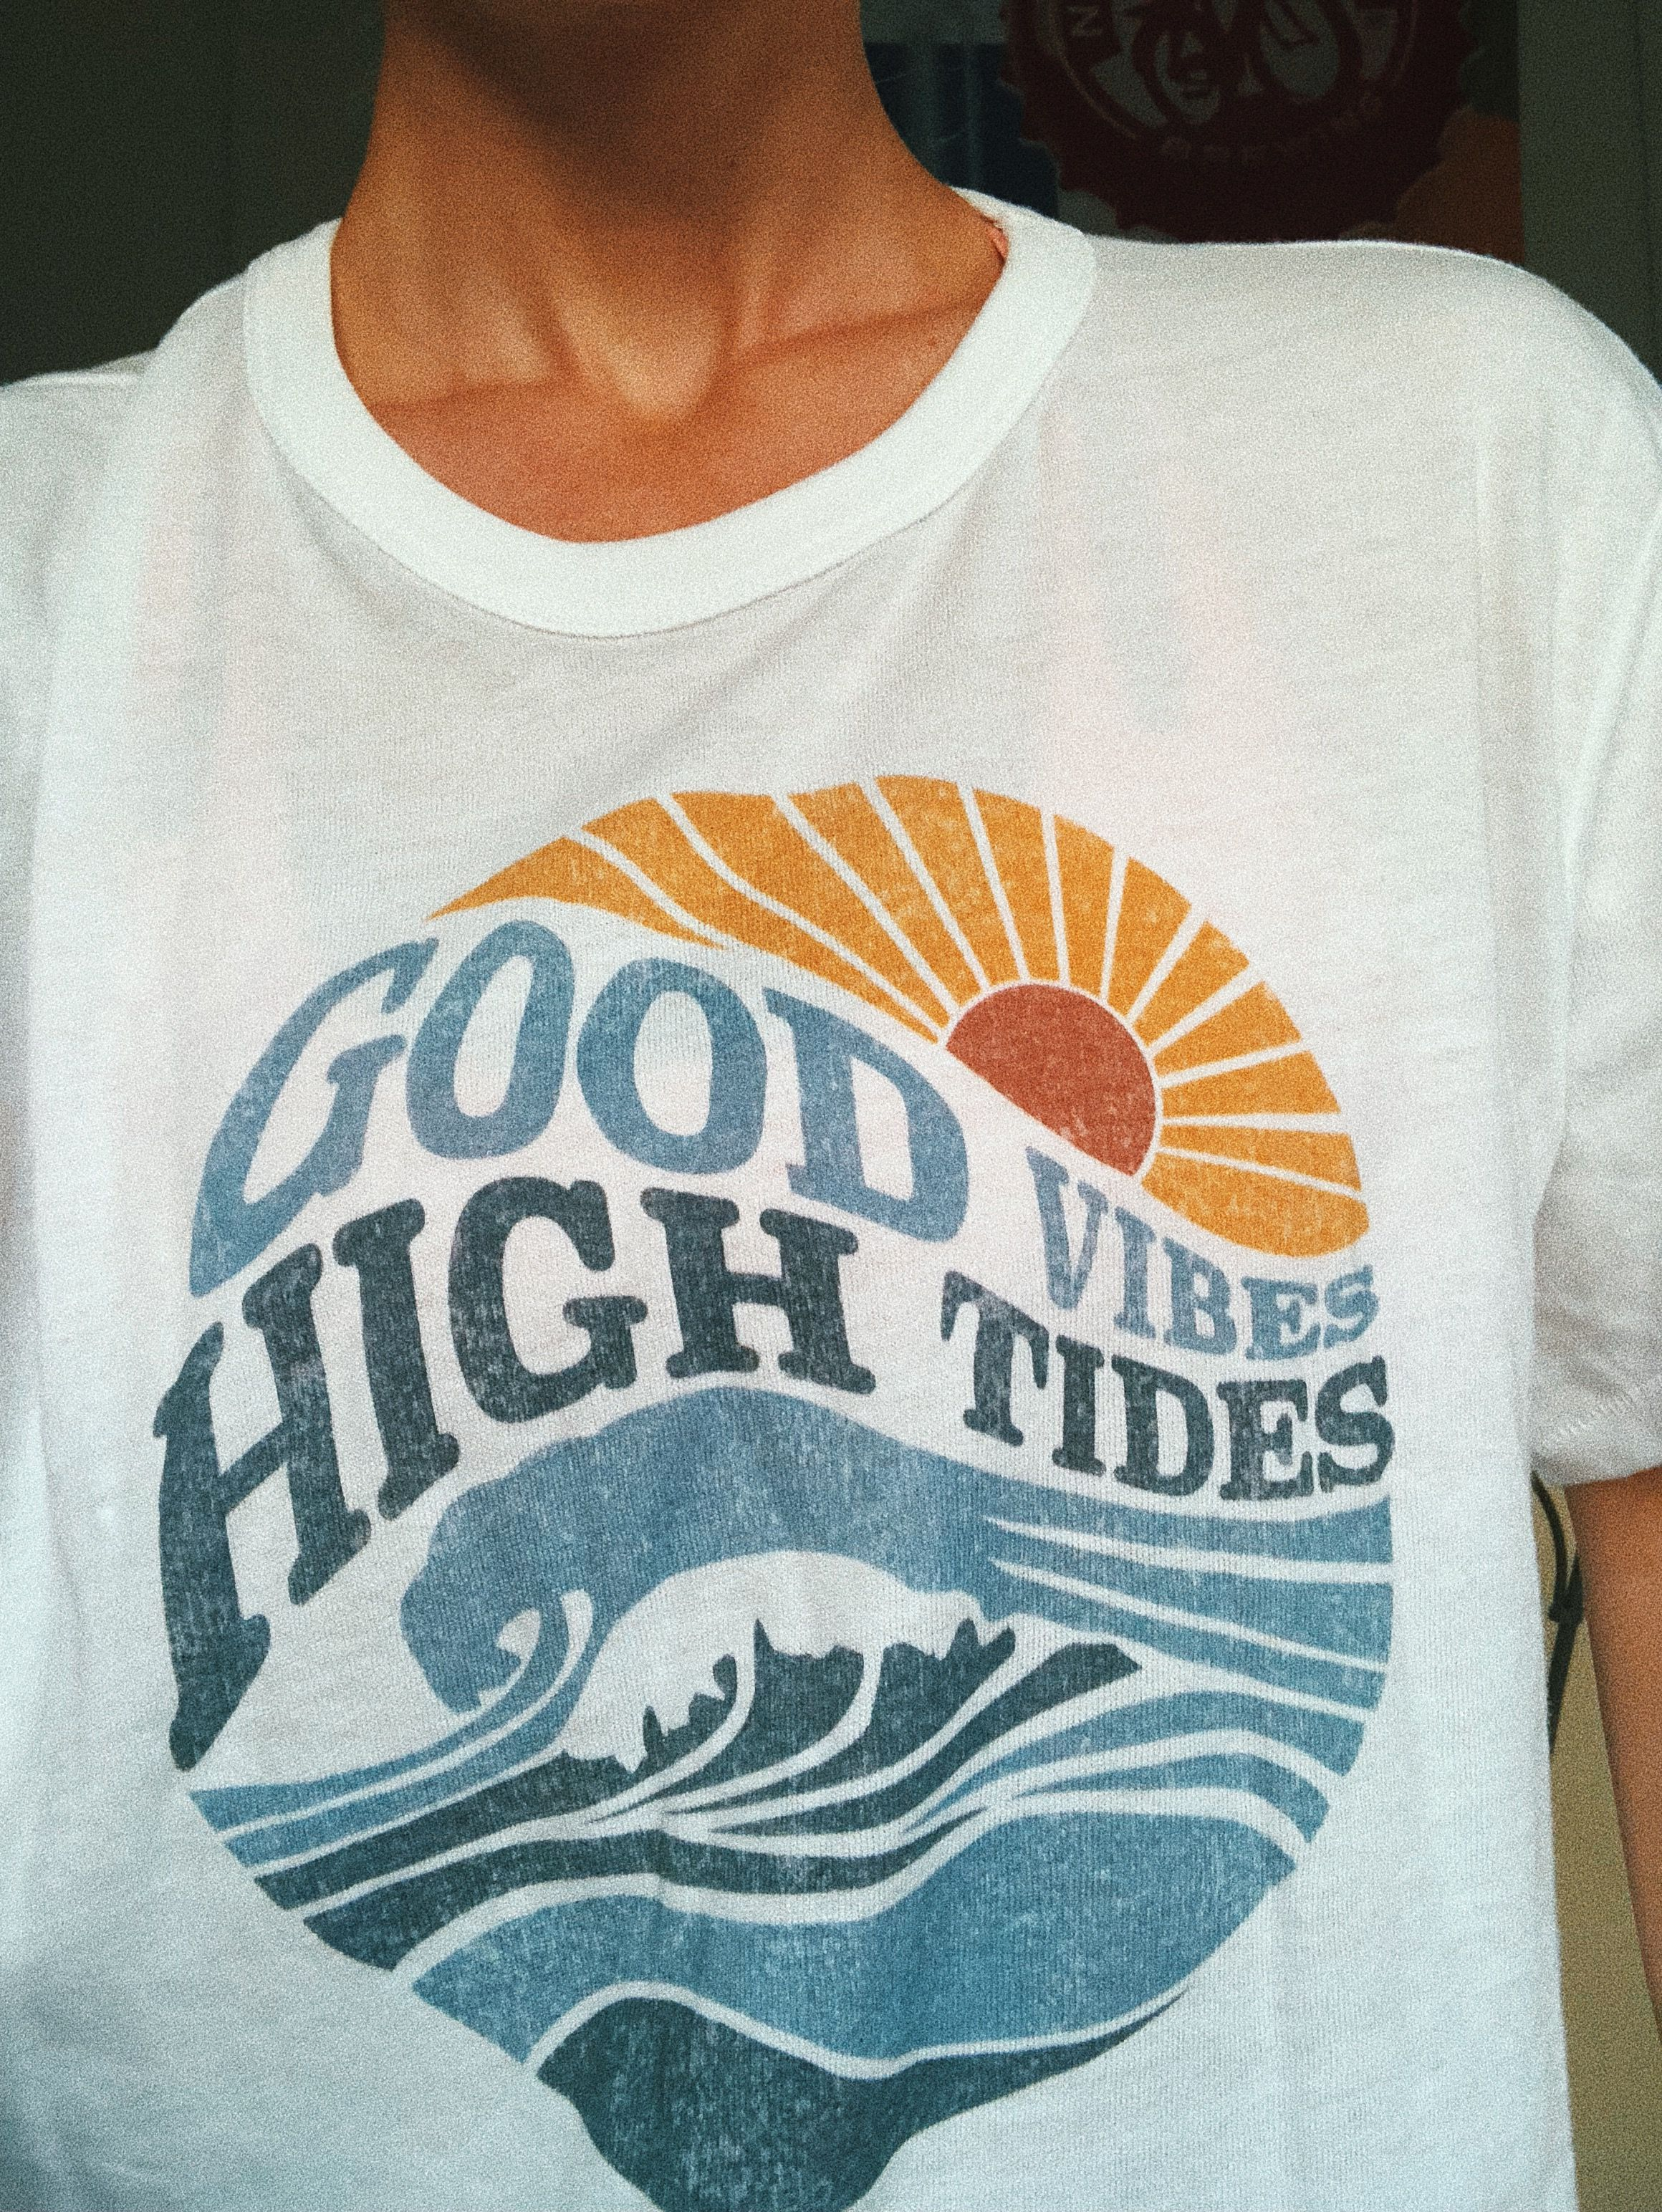 ae2575d3e7f0 High Tides Tee in 2019